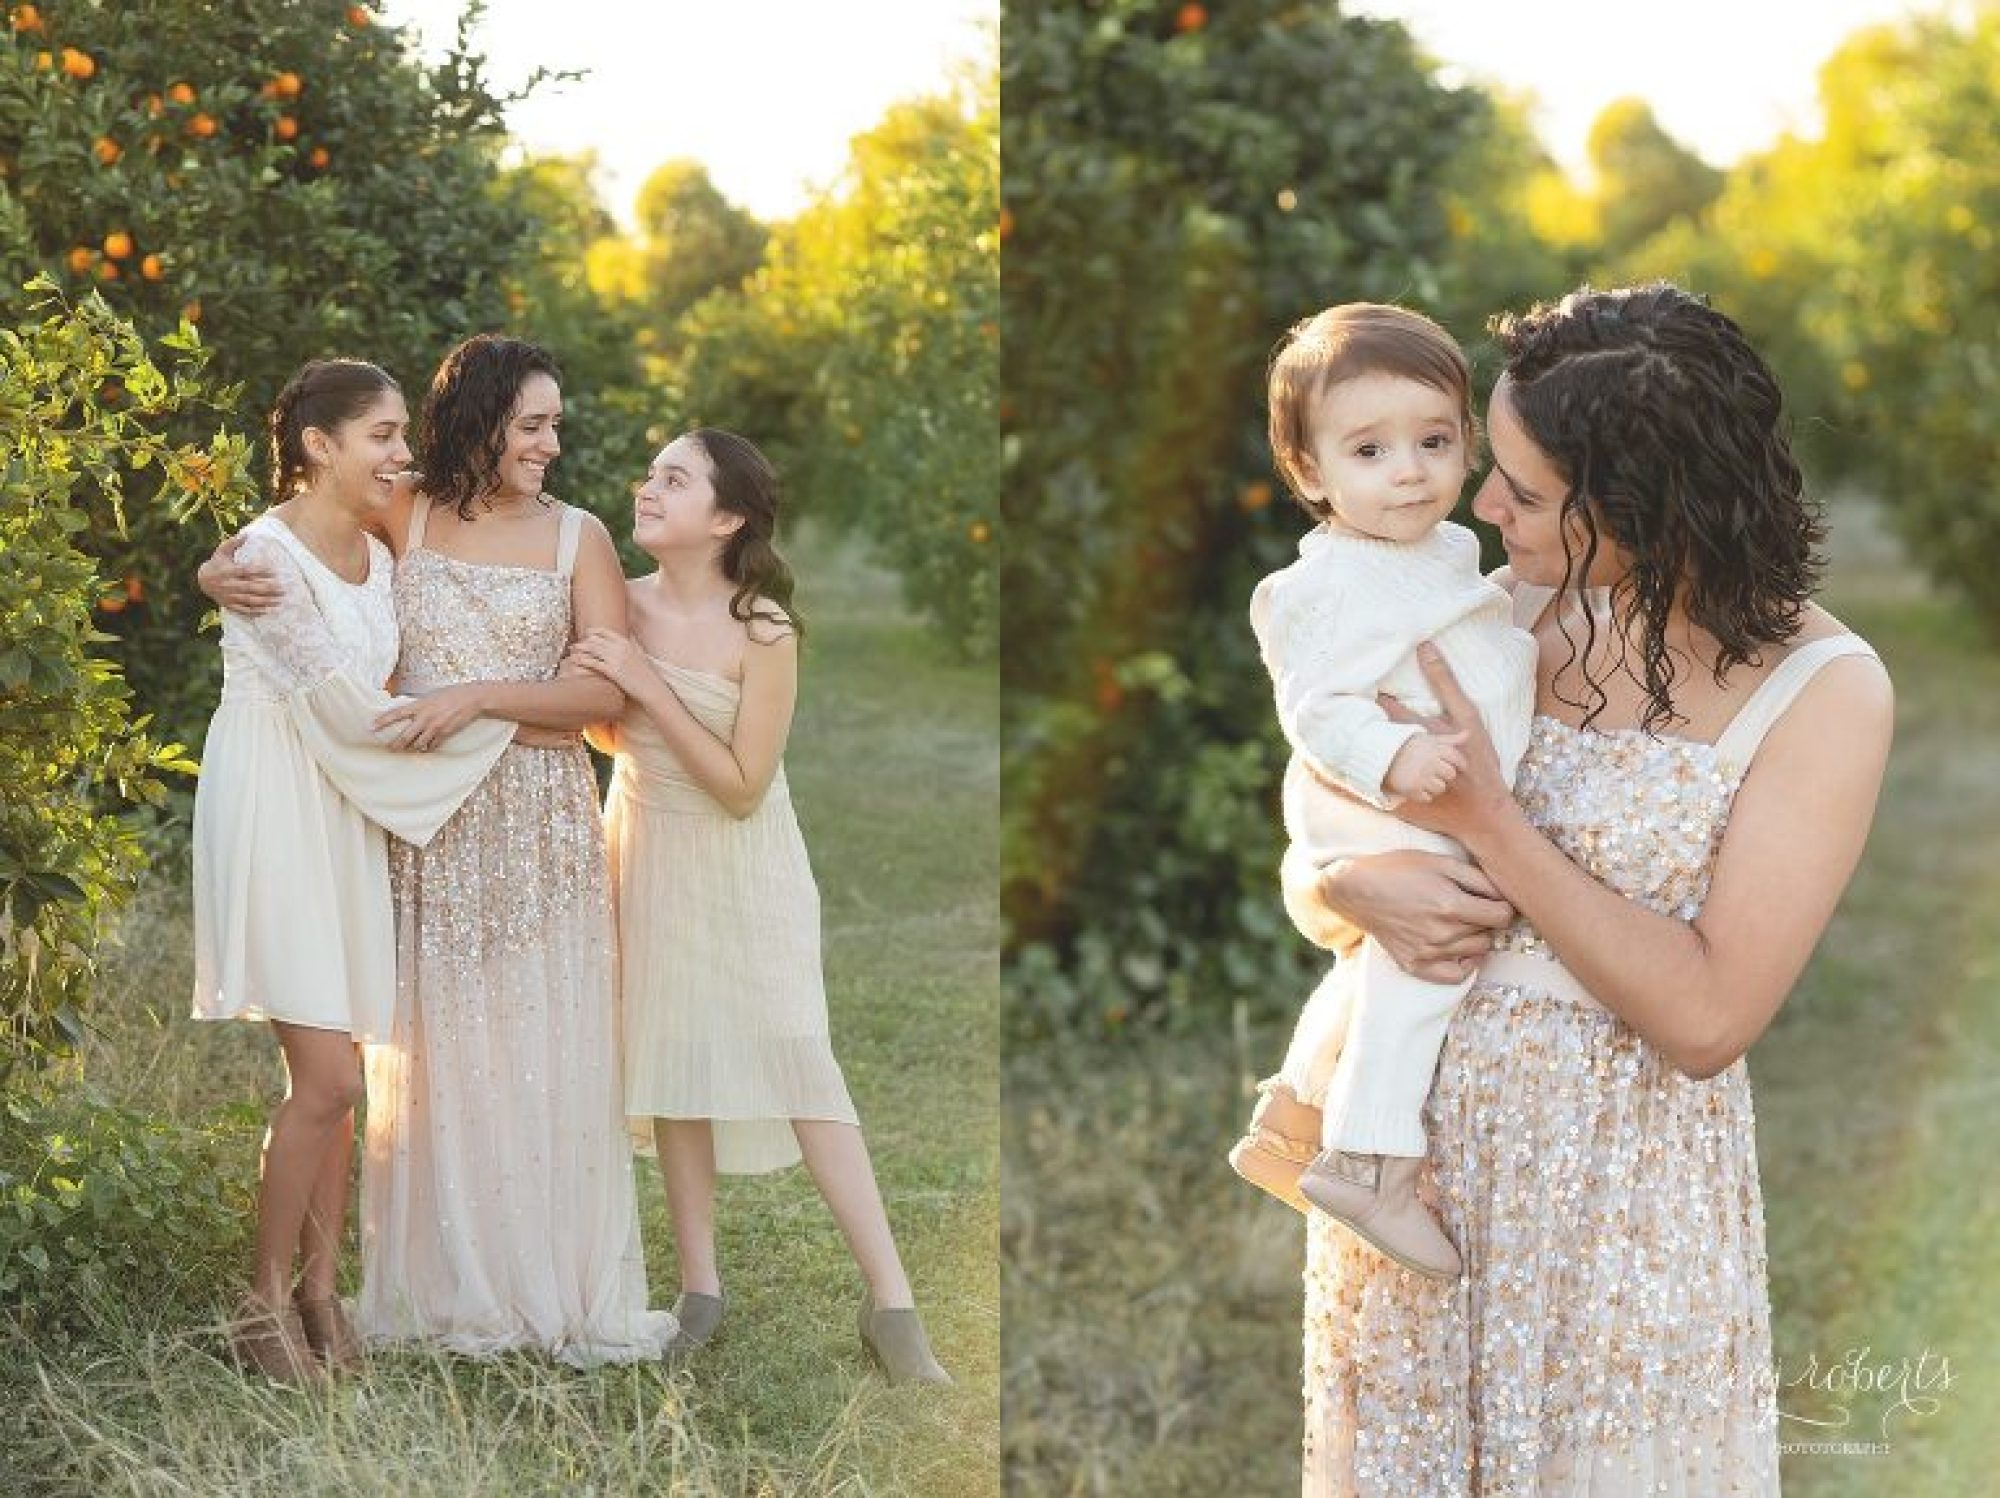 Mother with children in orange grove filed dressed in neutral clothing | Phoenix Family Photographer | Reaj Roberts Photography